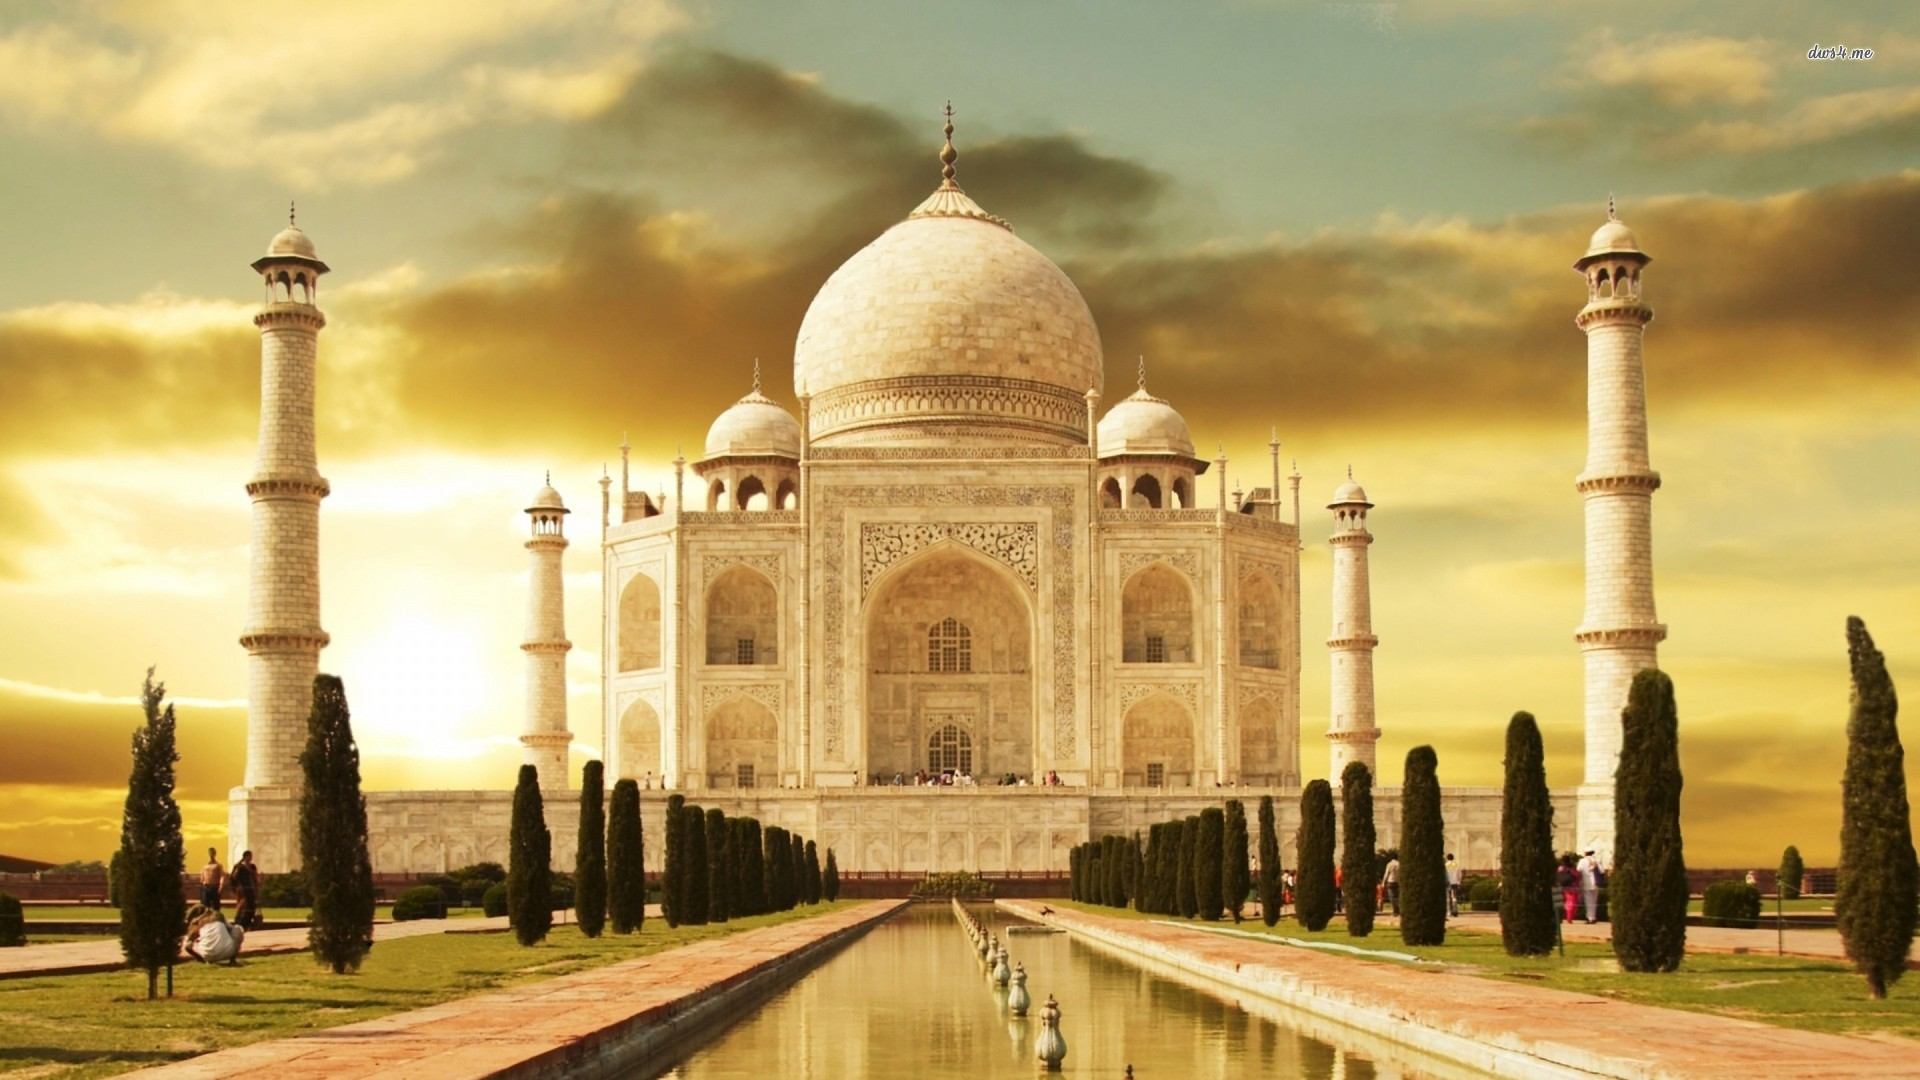 The Yellow Wallpaper Symbolism Quotes Download Taj Mahal At Night Wallpaper 3d Gallery